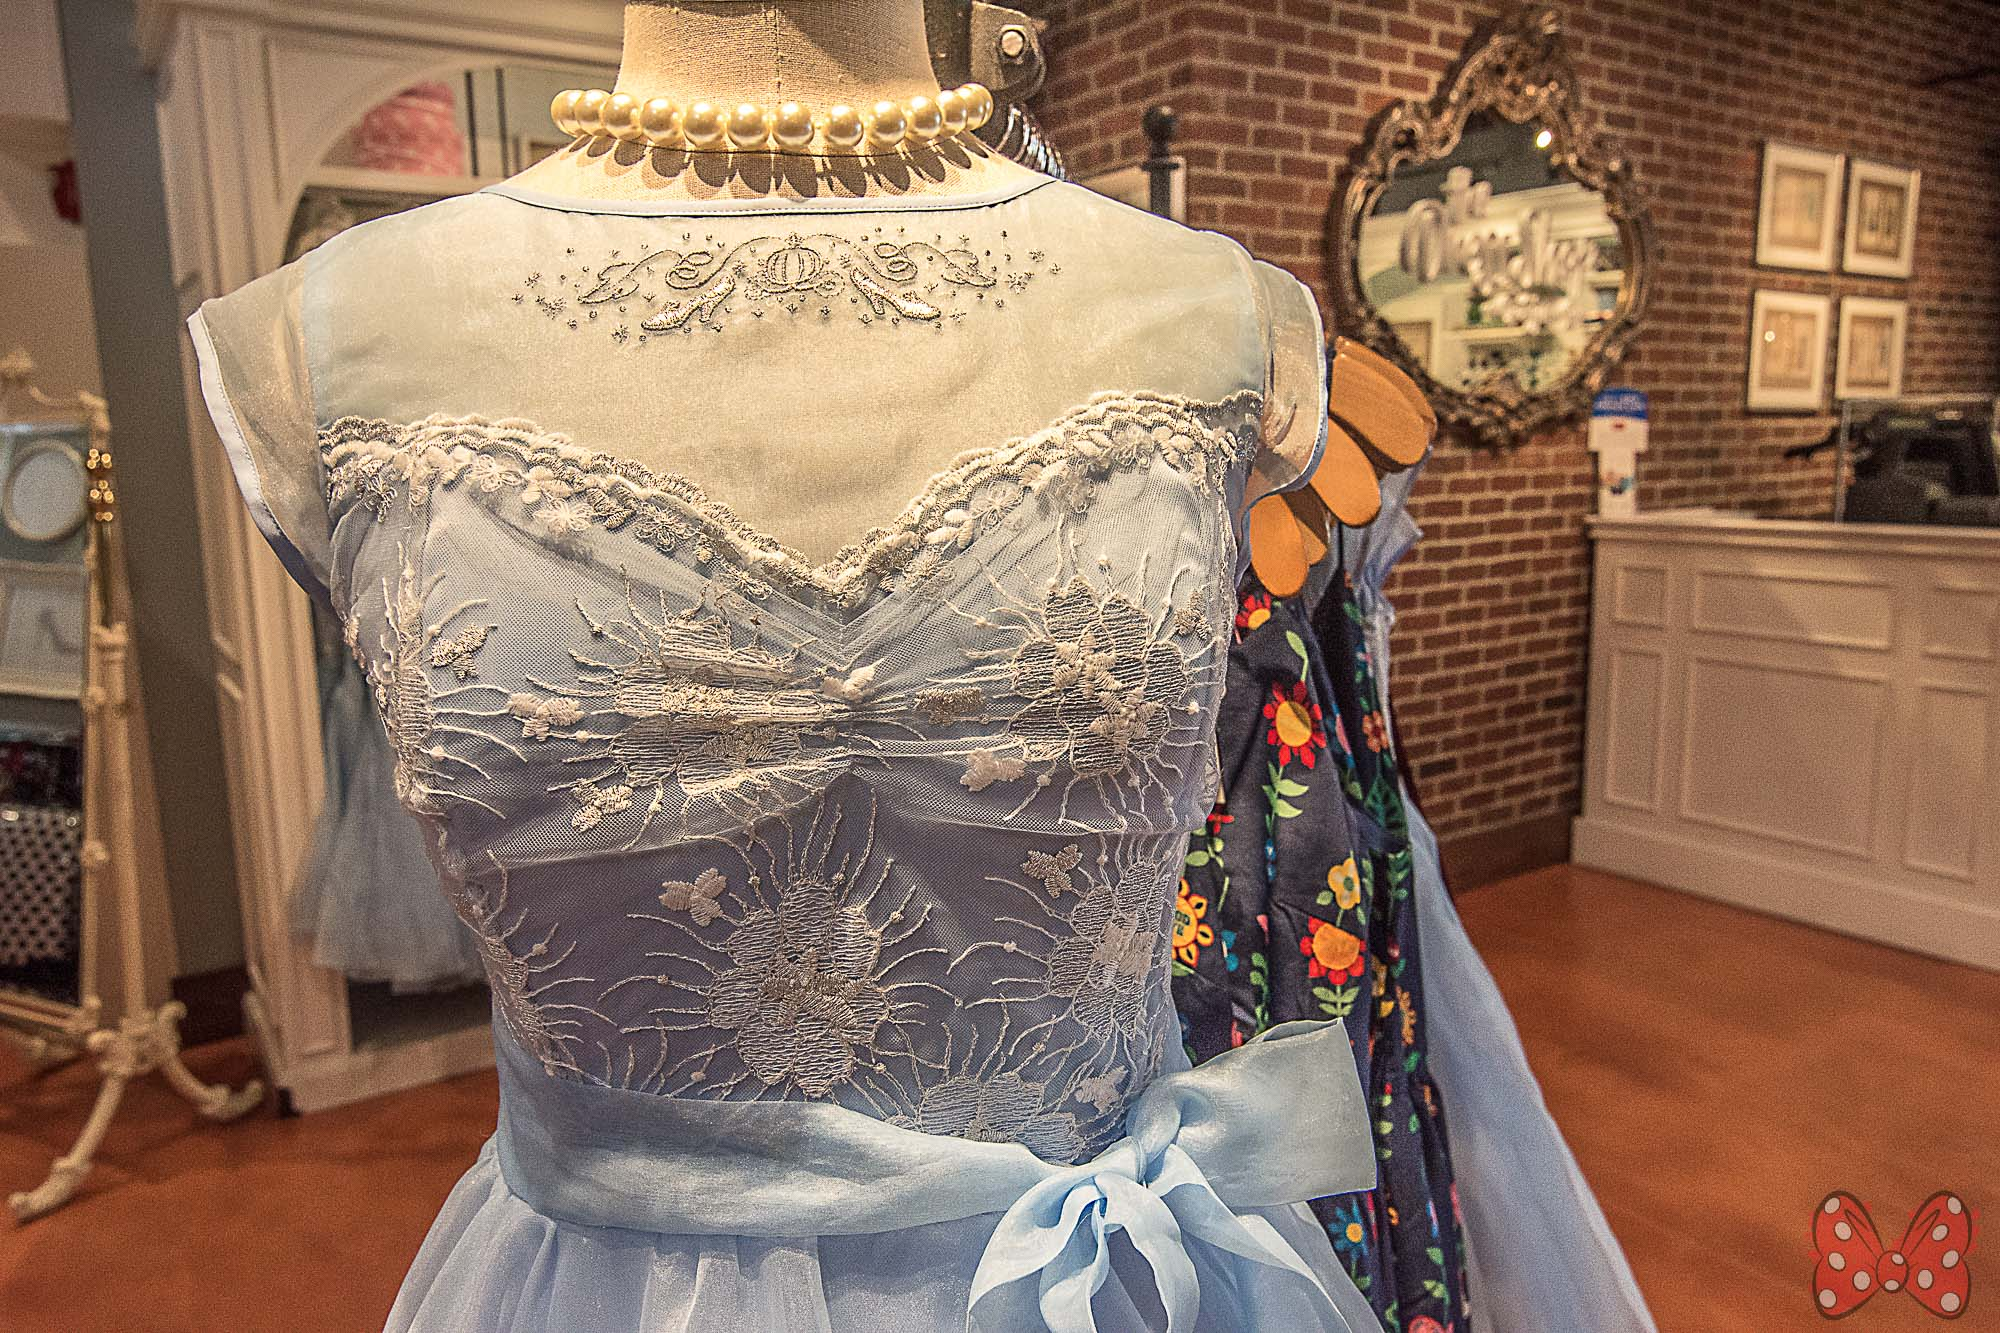 NEW Cinderella-Inspired Dress at The Dress Shop - Blog Mickey